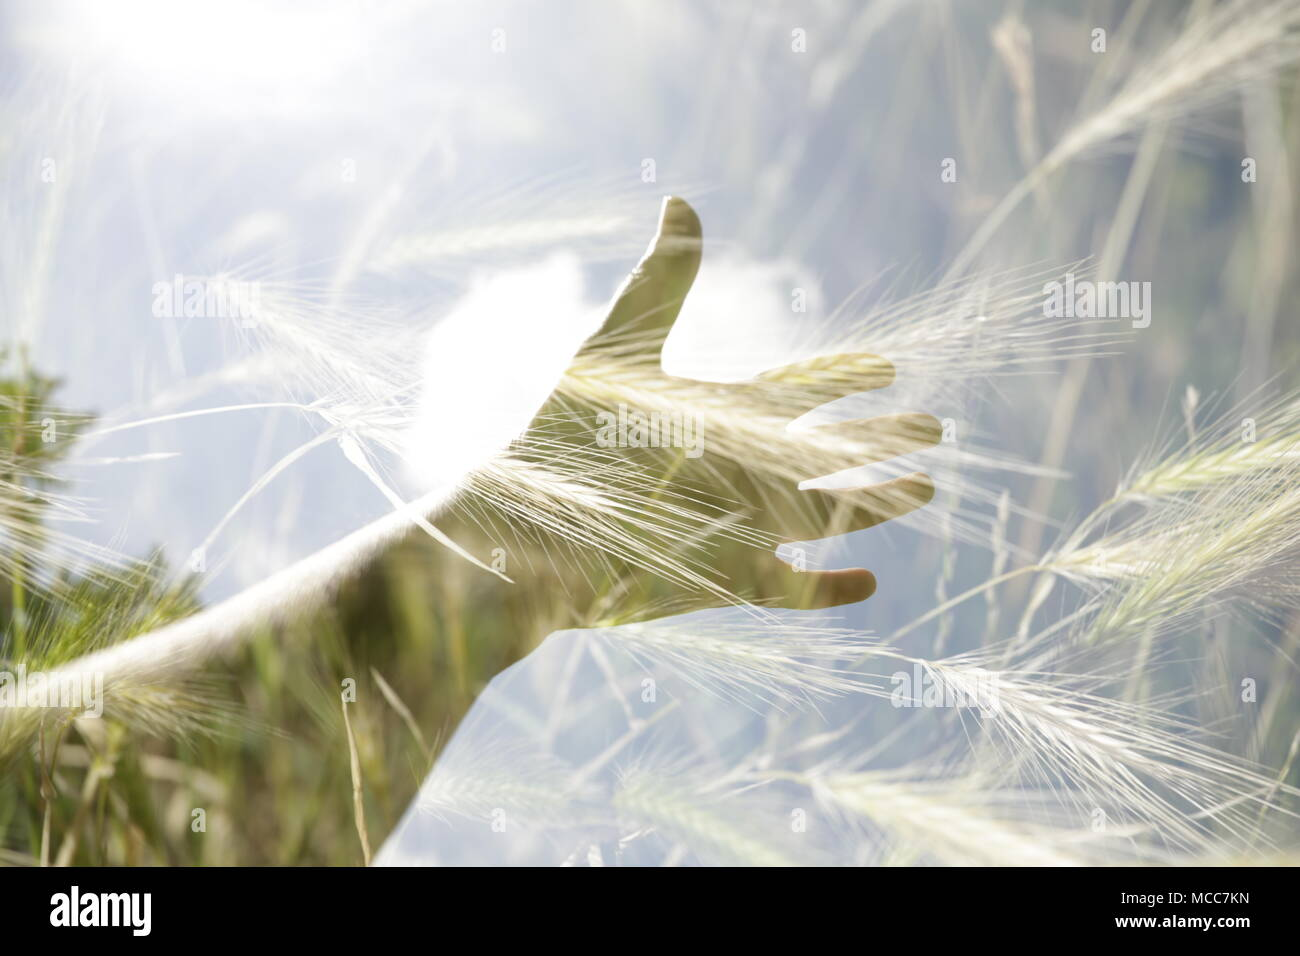 Hand with plant in double exposure - Stock Image